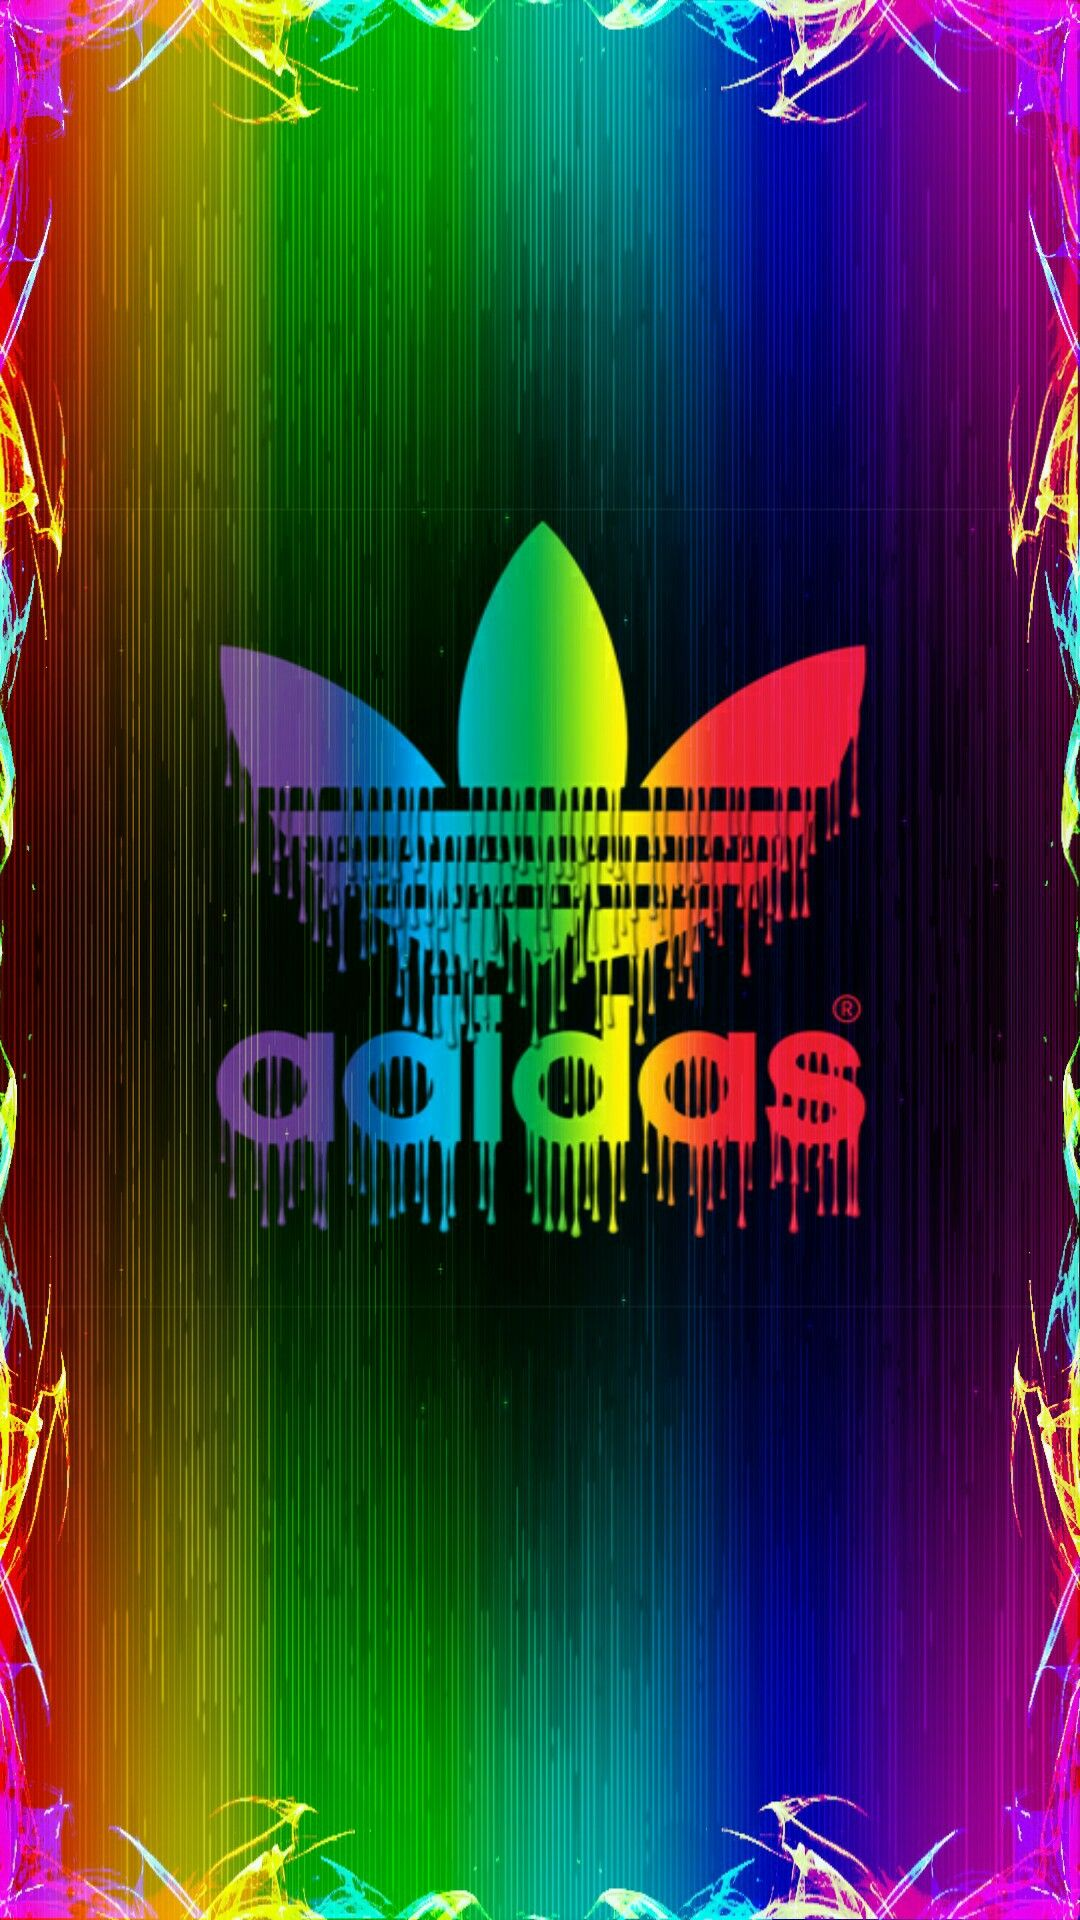 Adidas Adidas wallpapers, Adidas logo wallpapers, Adidas